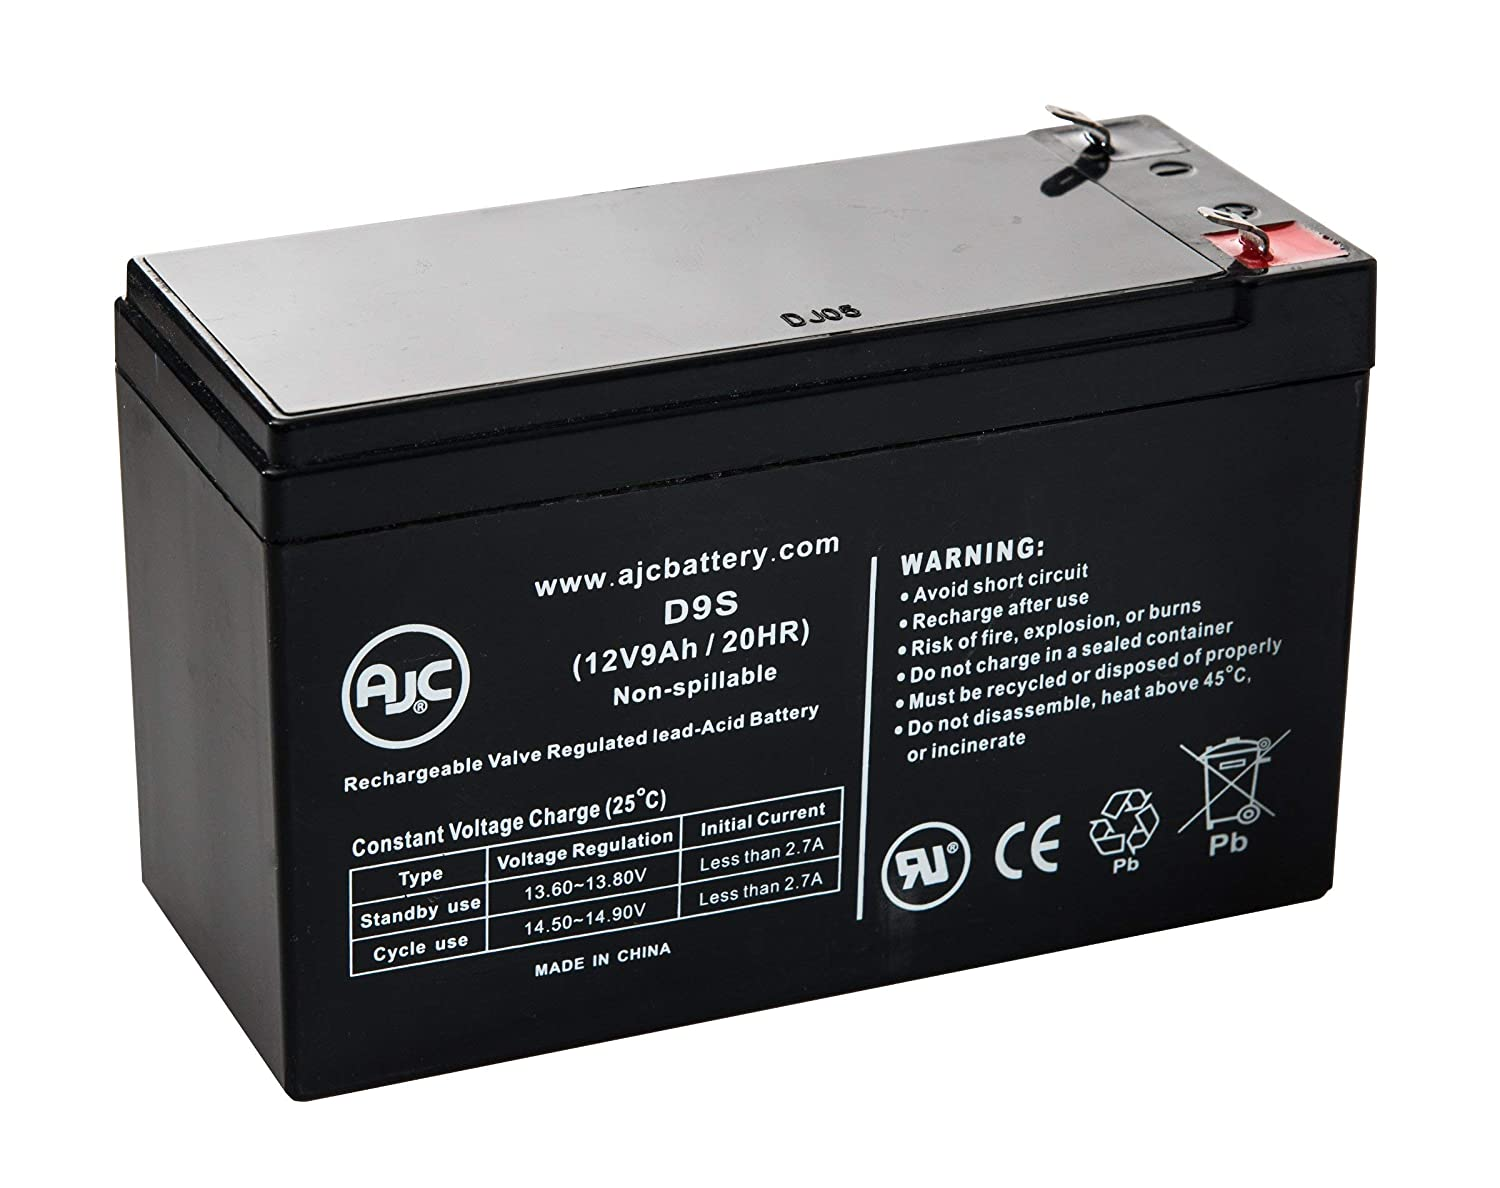 WKA12-9F2 12V 9Ah UPS Battery - This is an AJC Brand Replacement AJC Battery